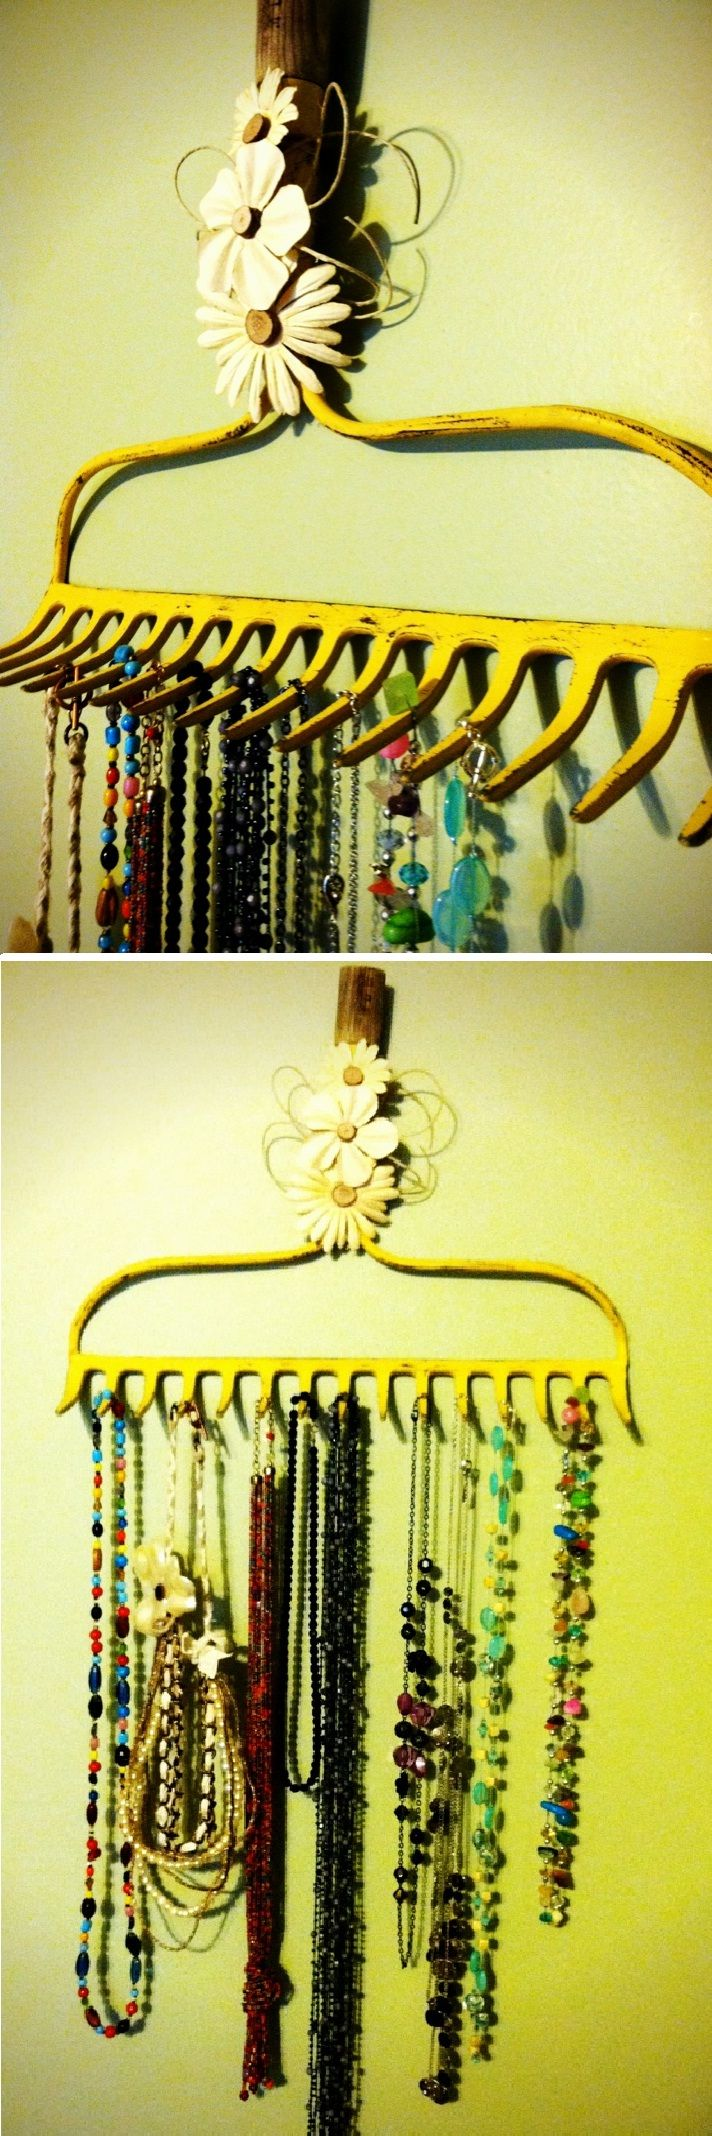 My latest project finished and photographed :)